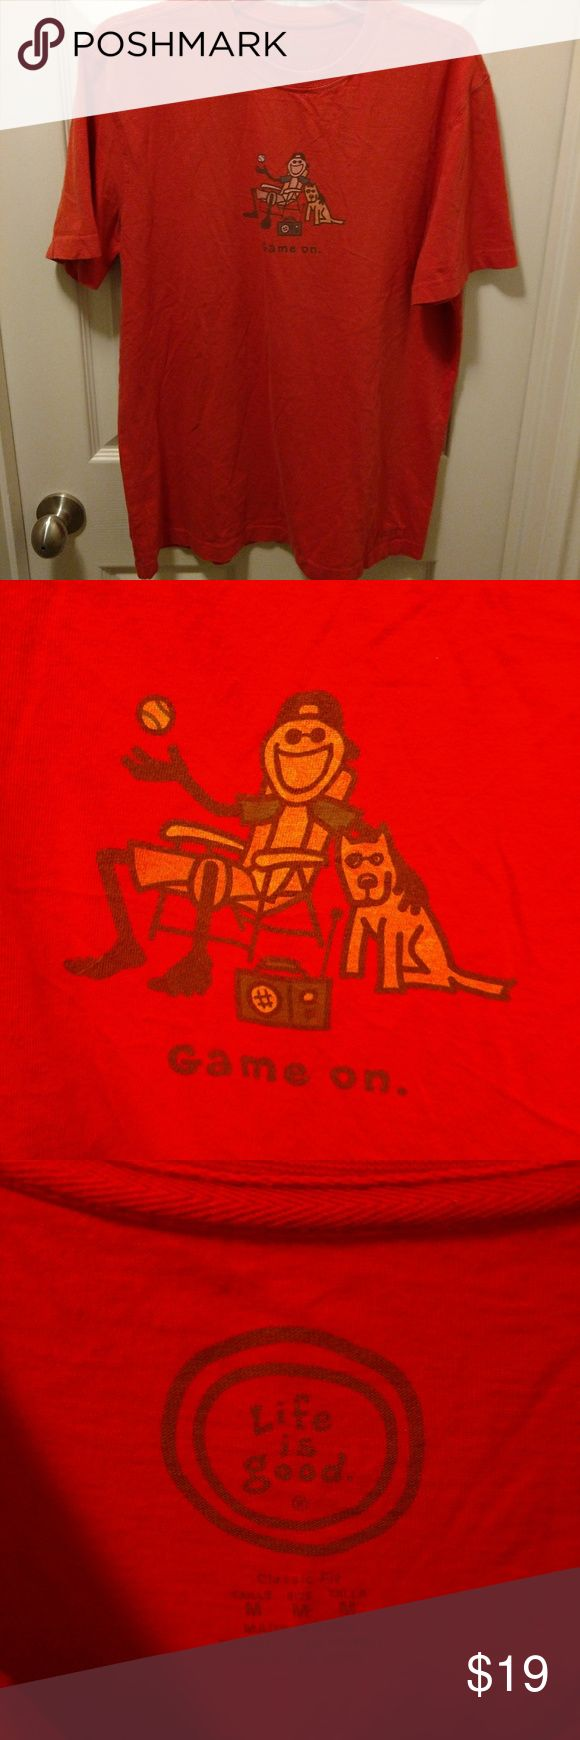 "LIFE IS GOOD "" GAME ON"" TSHIRT LIFE IS GOOD MEN'S TSHIRT. ""GAME ON""  SIZE MEDIUM ARMPIT TO ARMPIT: 21"" COLLAR TO BASE: 28""  VERY GOOD CONDITION WITH NO RIPS TEARS OR STAINS  #607 Life is Good Shirts Tees - Short Sleeve"